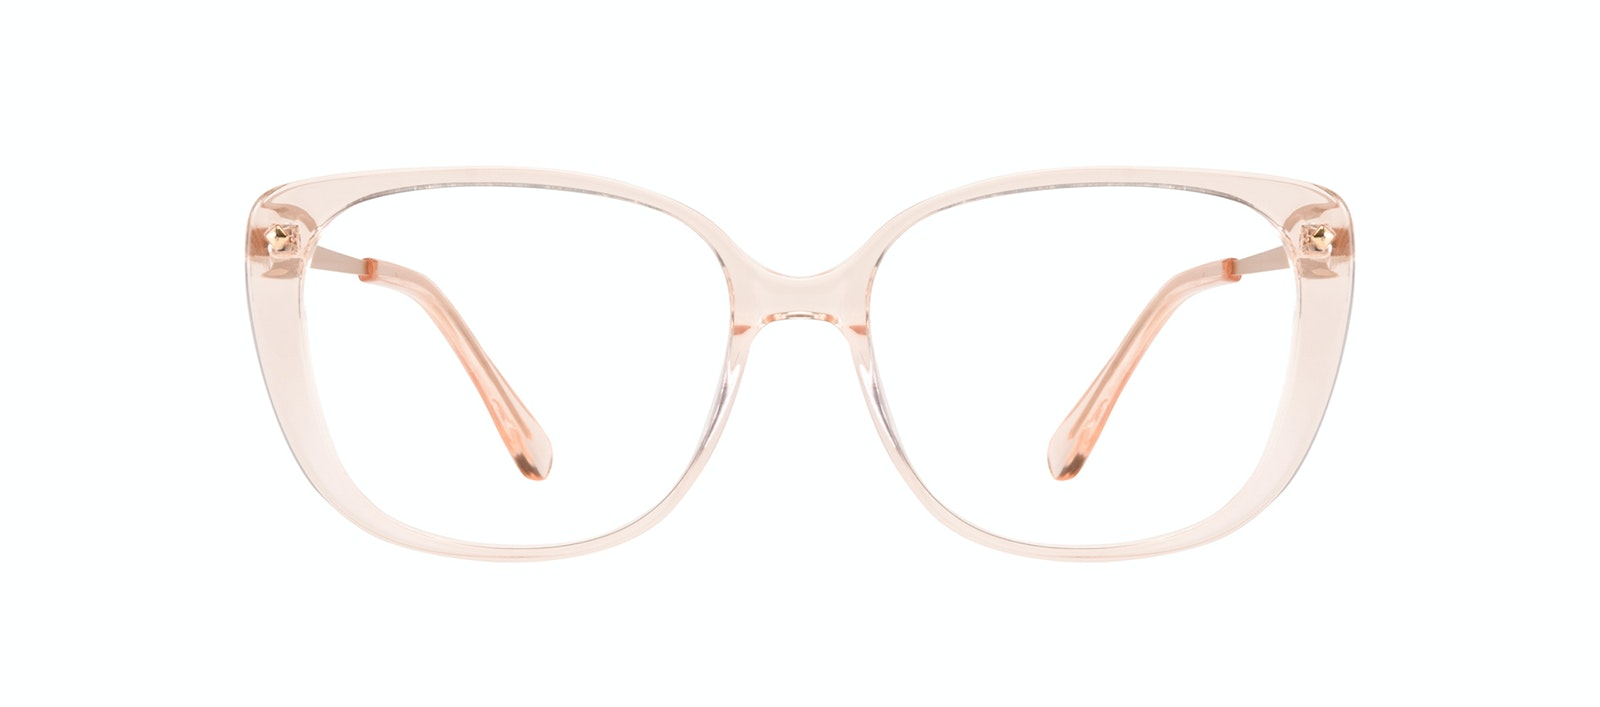 Affordable Fashion Glasses Square Eyeglasses Women Japonisme Blond Front